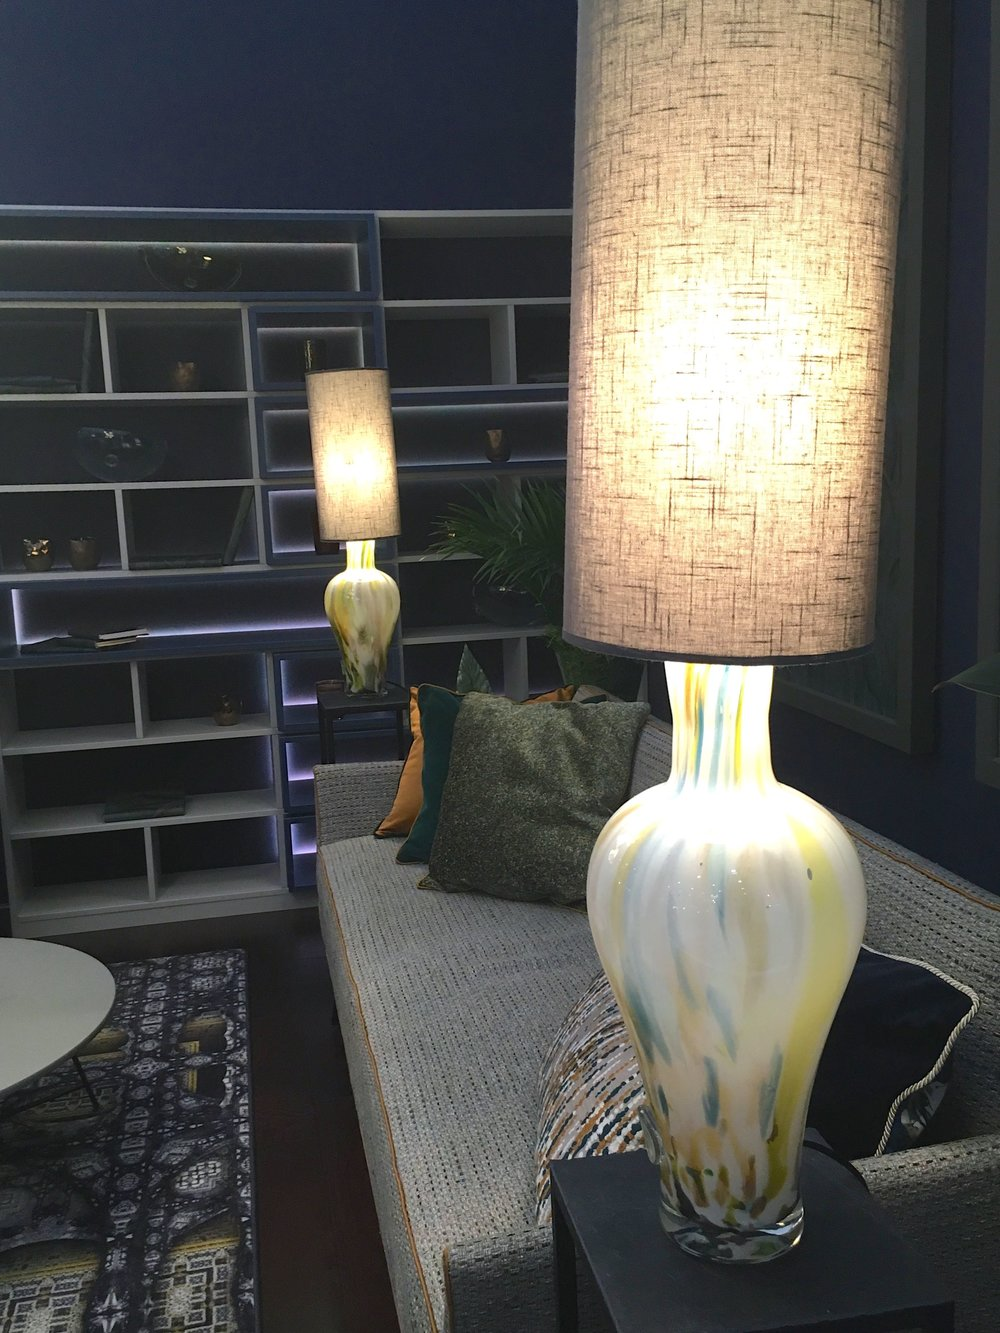 A closer look at the table lamps